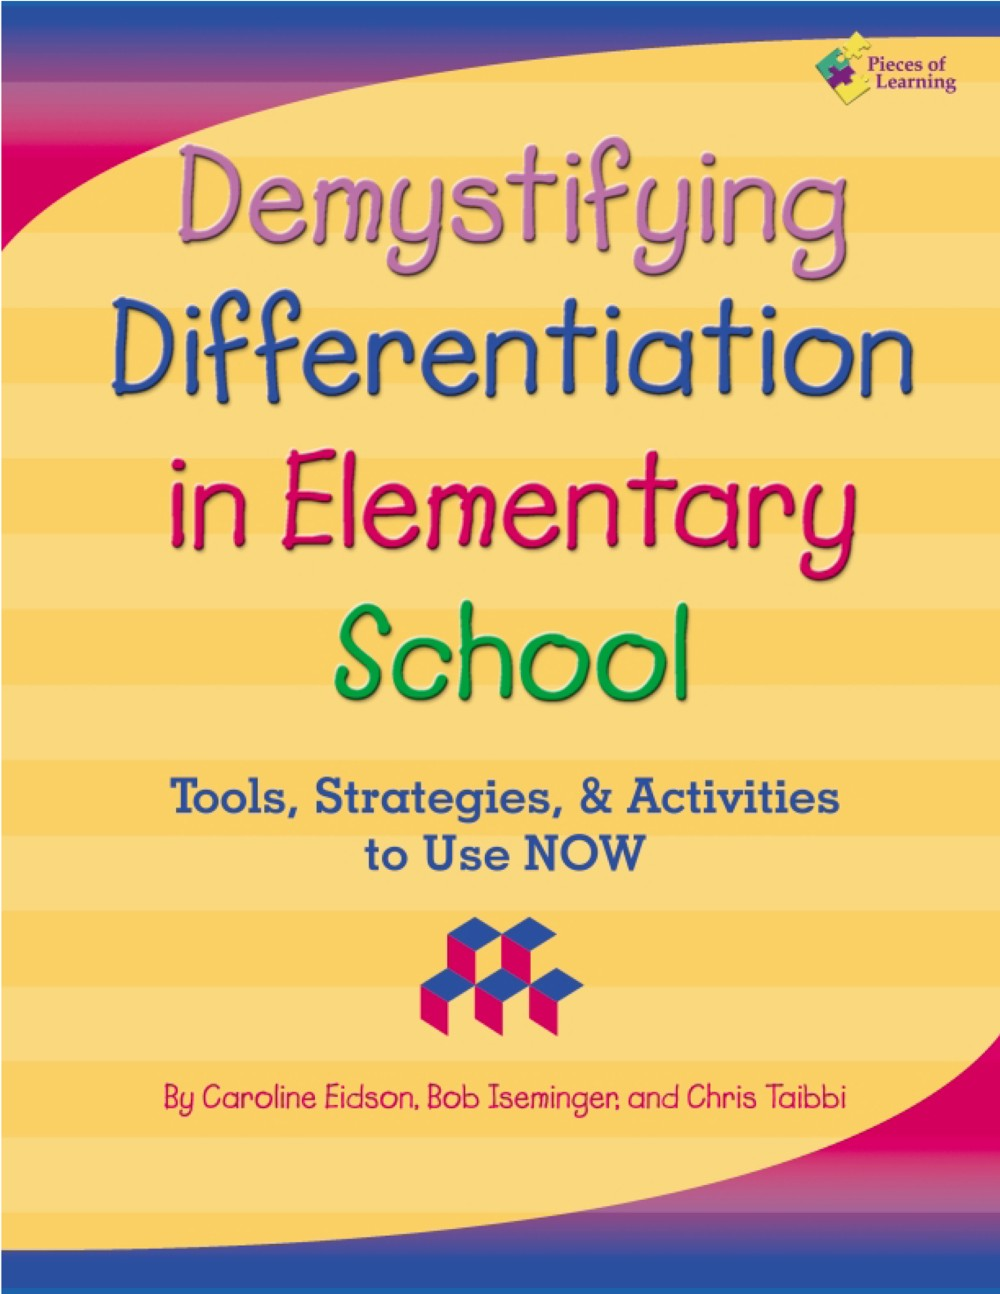 Demystifying Differentiation in Elementary